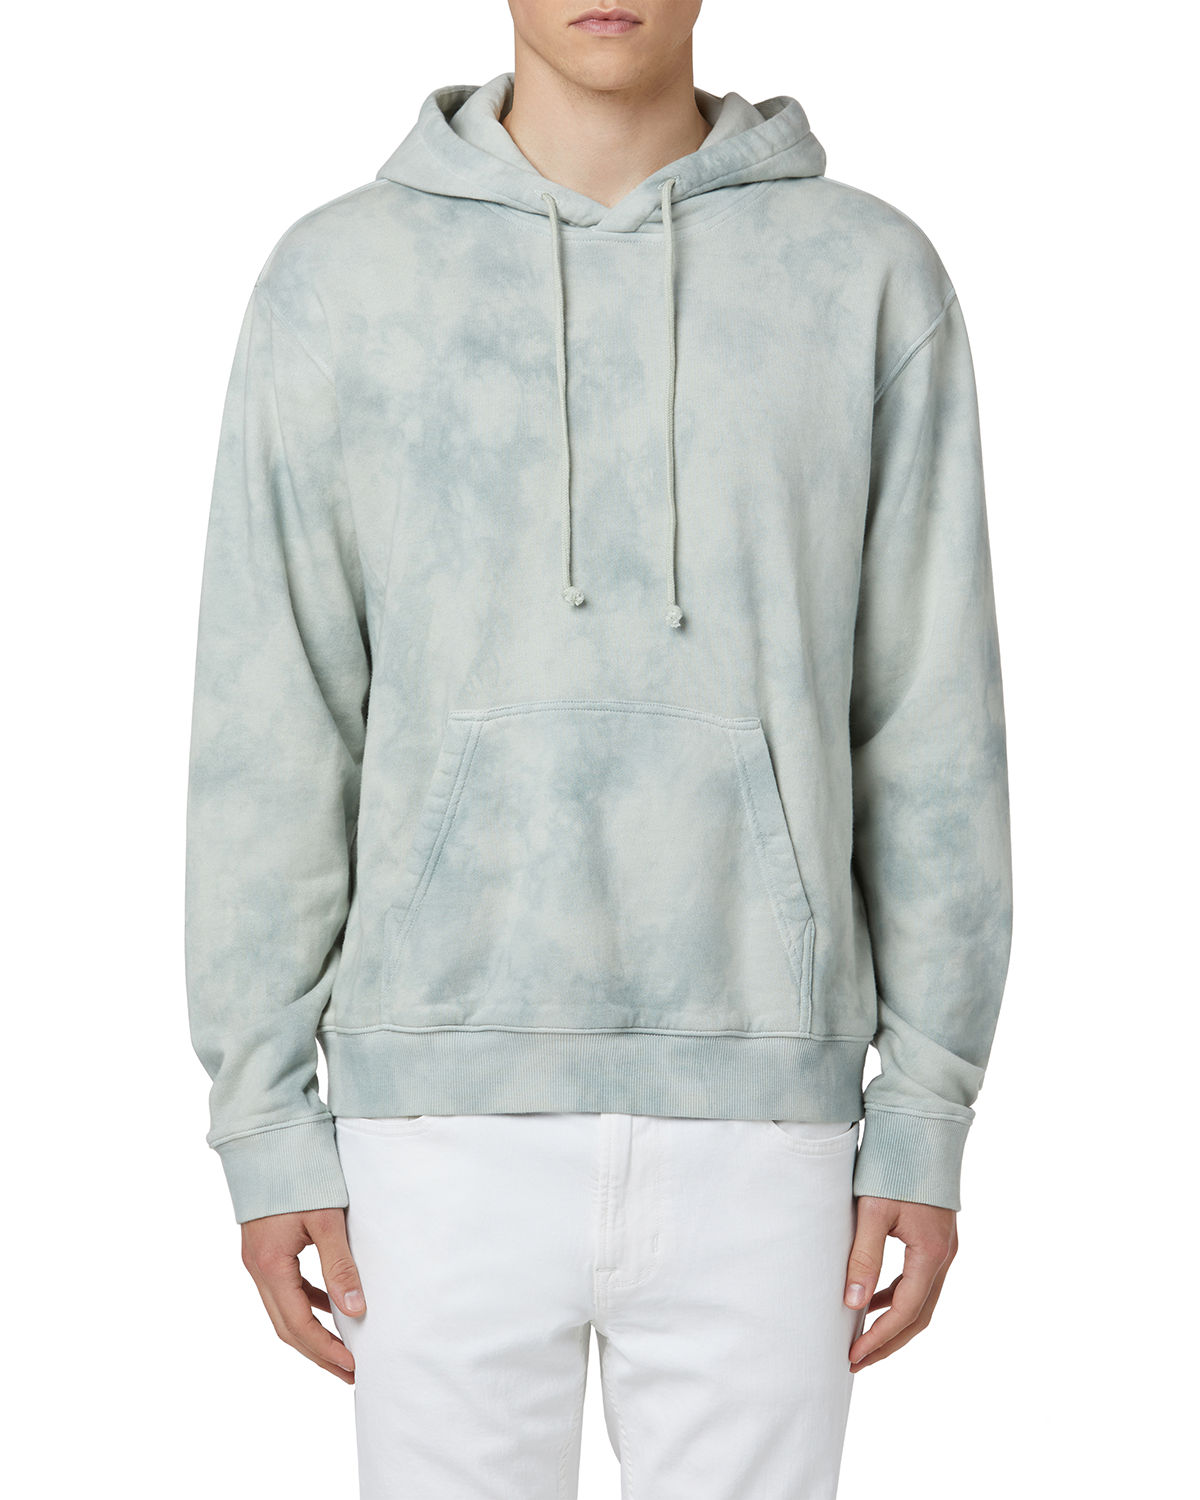 Men's Tie-Dye French Terry Pullover Hoodie